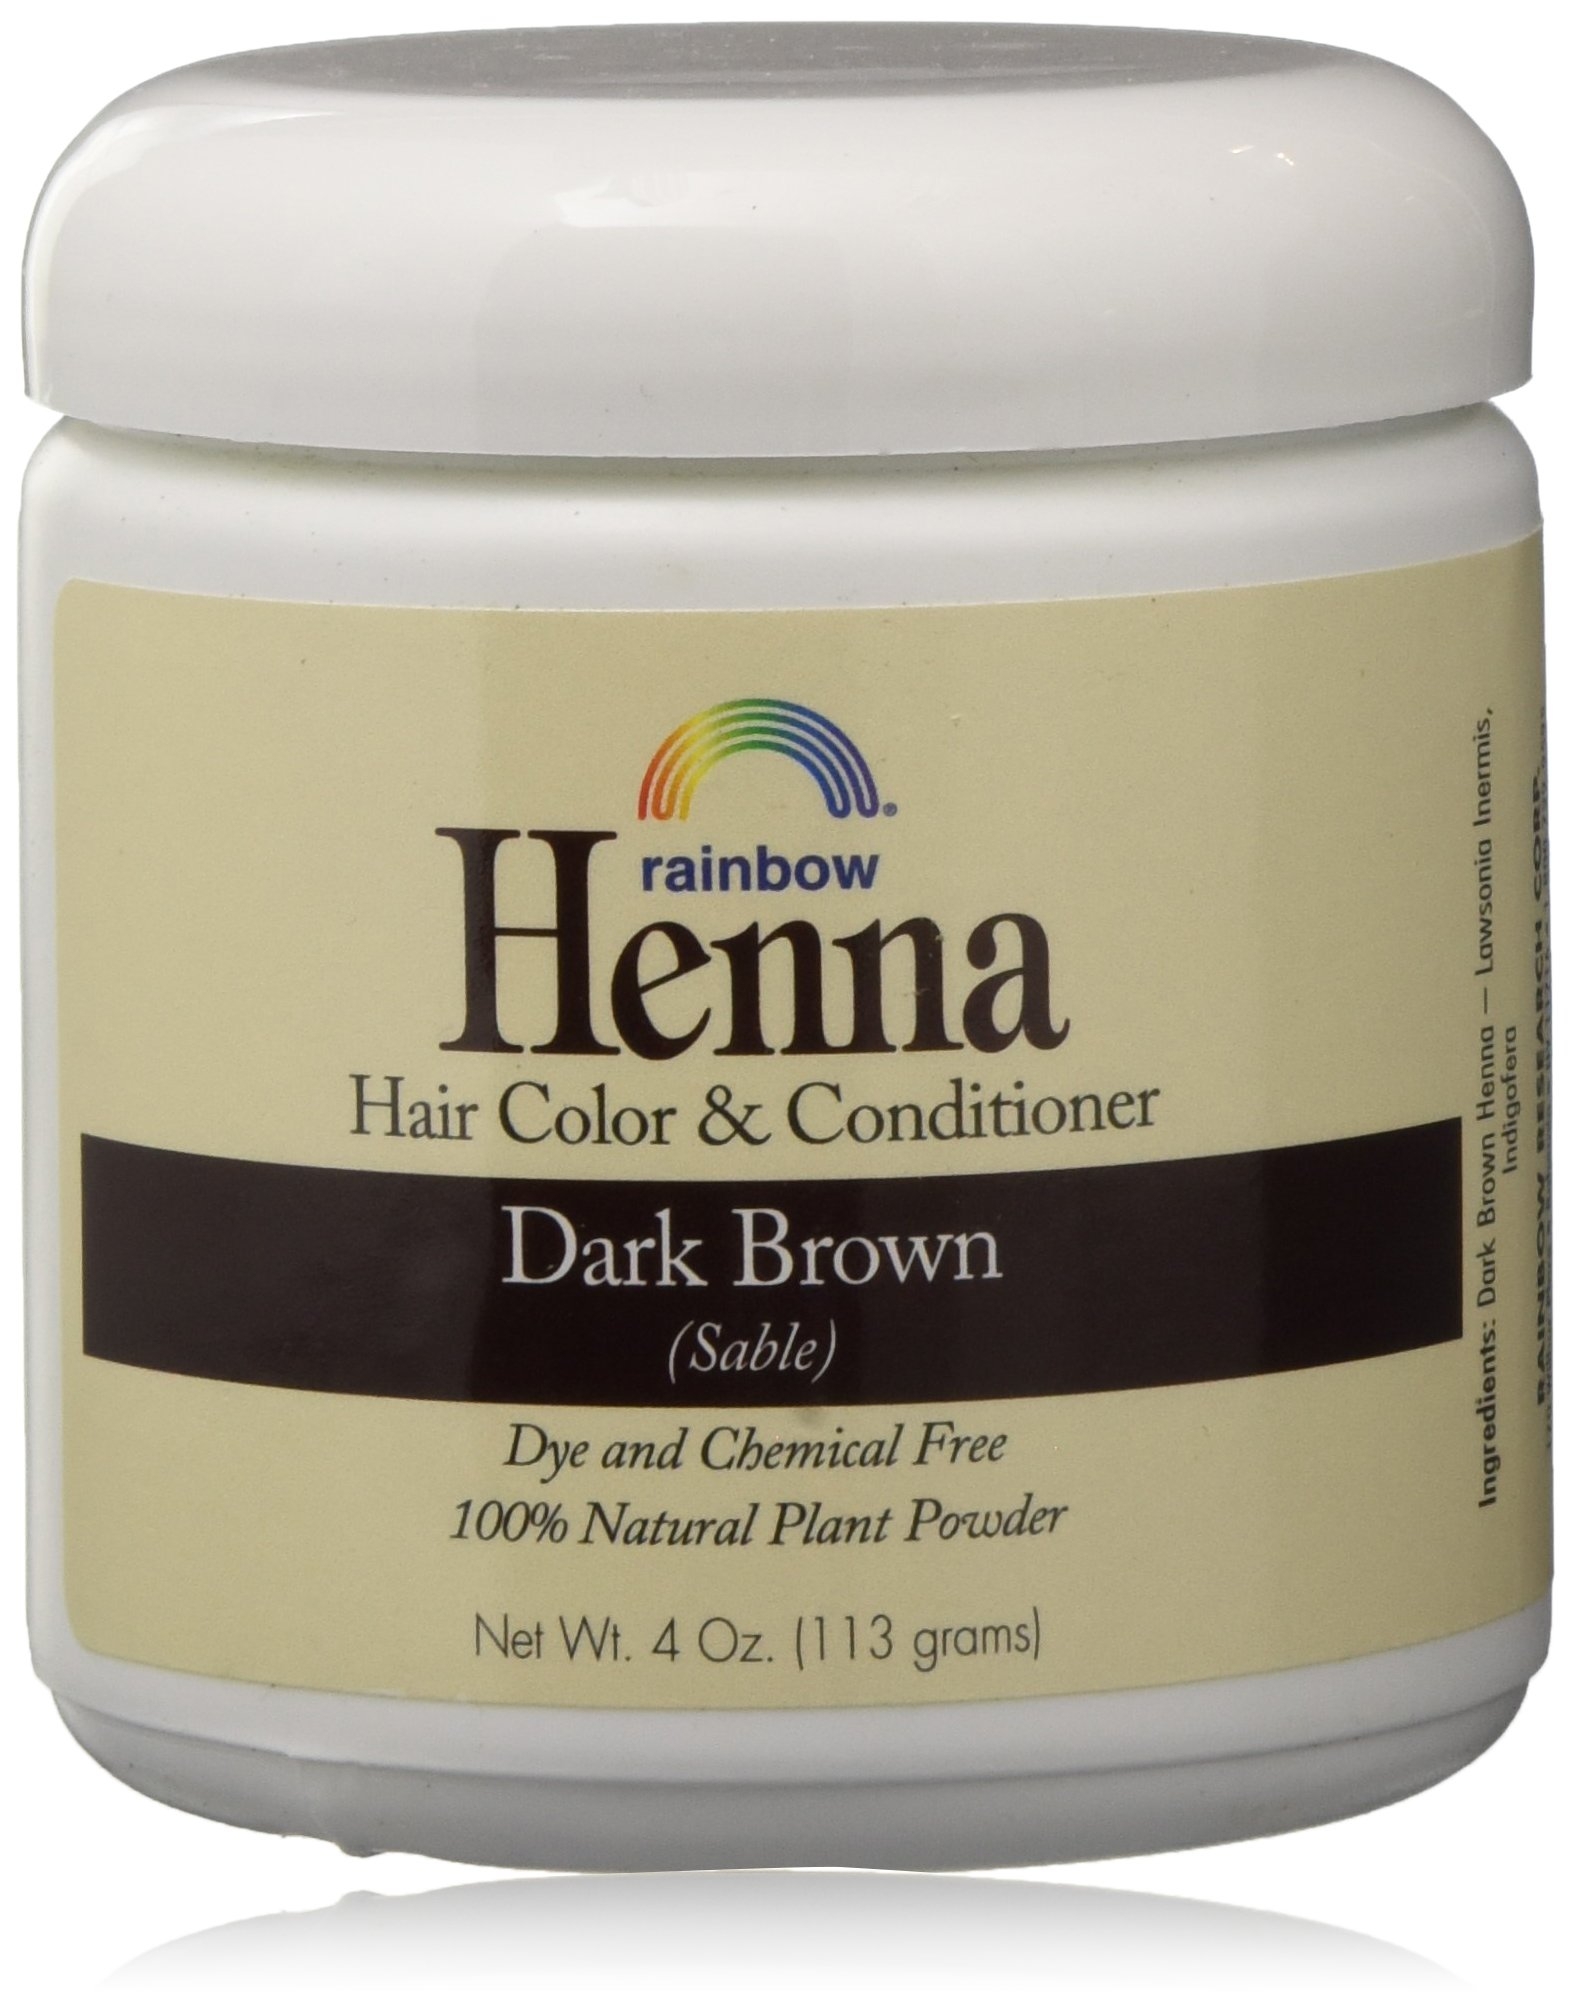 Rainbow Henna Persian Dark Brown Hair Color 4 Oz, (2 pack) by Colors of Rainbow